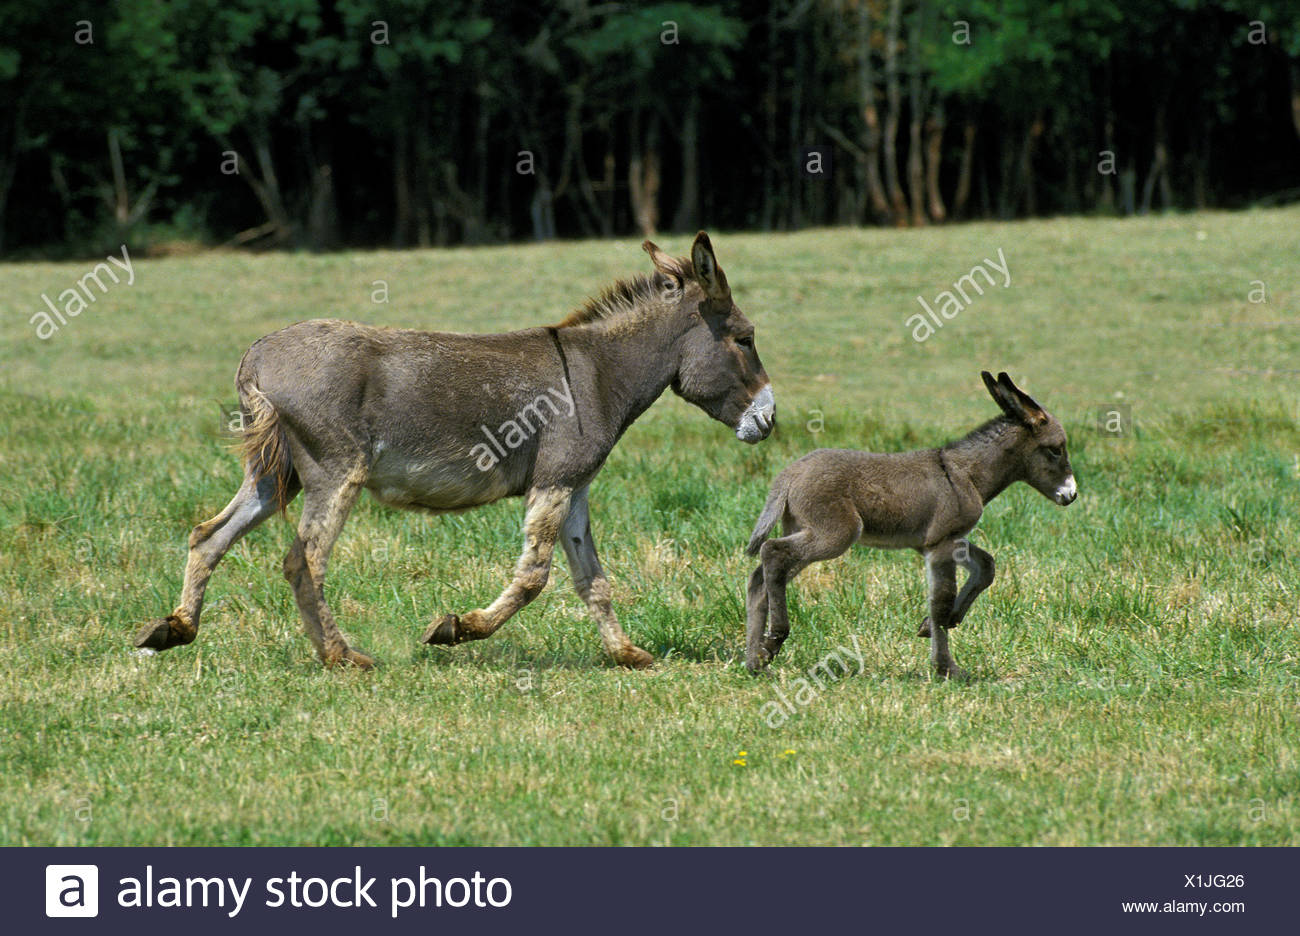 French Grey Donkey, Female with Foal Trotting Through Meadow - Stock Image